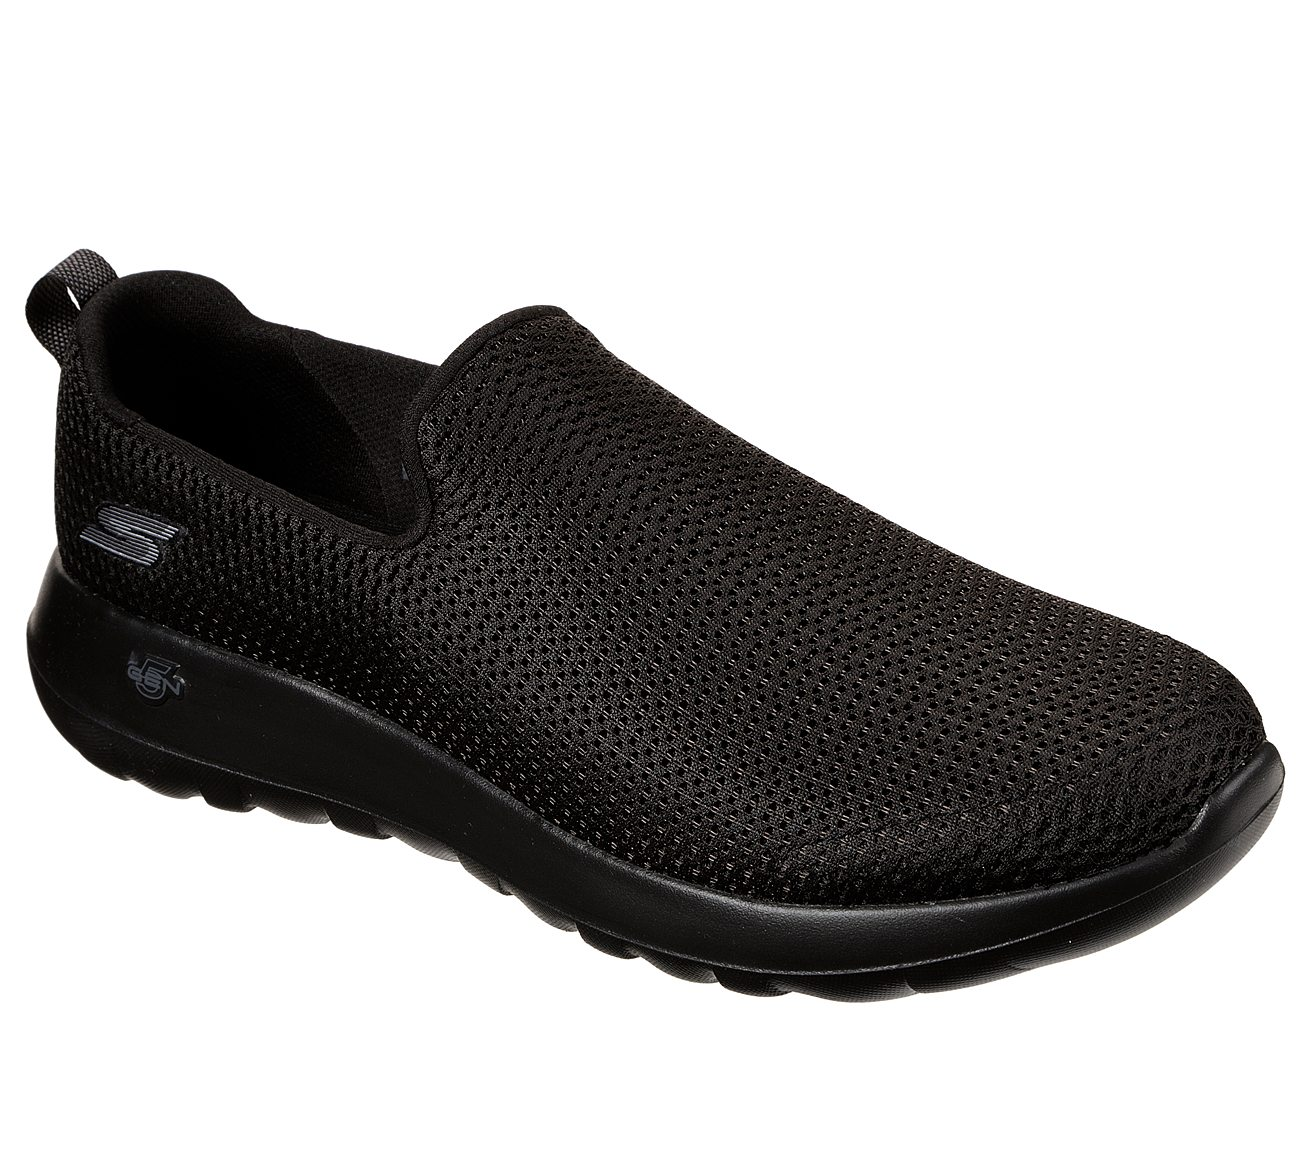 Skechers Performance Go Walk Max Infinite Men's Walking Shoes